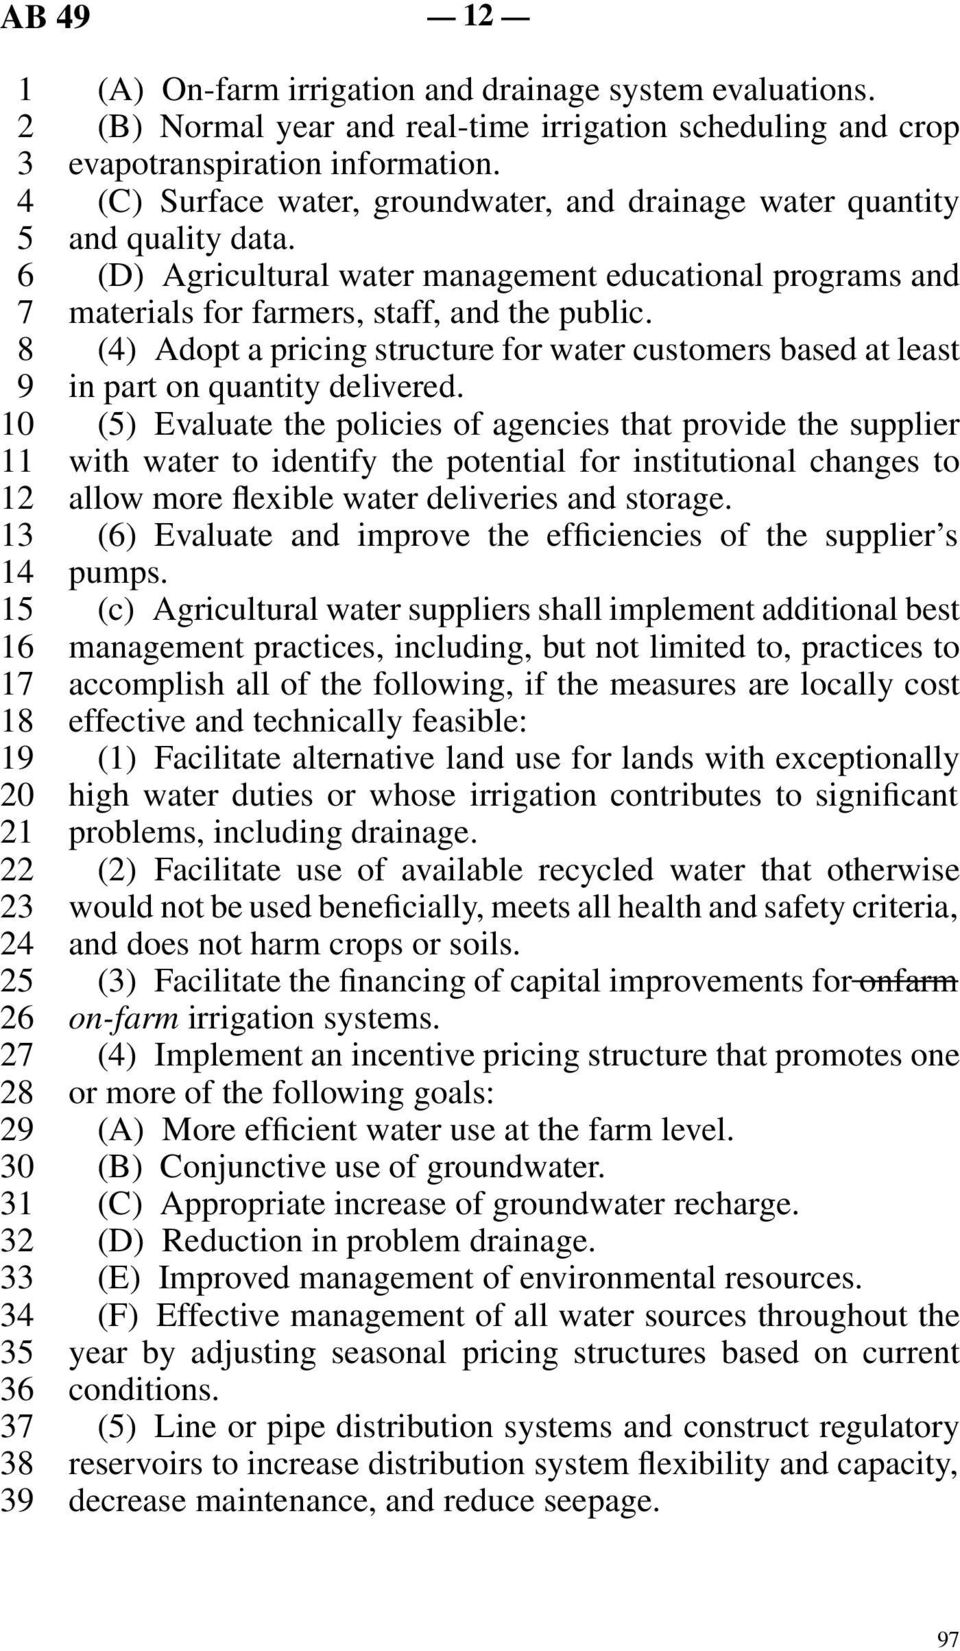 (D) Agricultural water management educational programs and materials for farmers, staff, and the public. (4) Adopt a pricing structure for water customers based at least in part on quantity delivered.